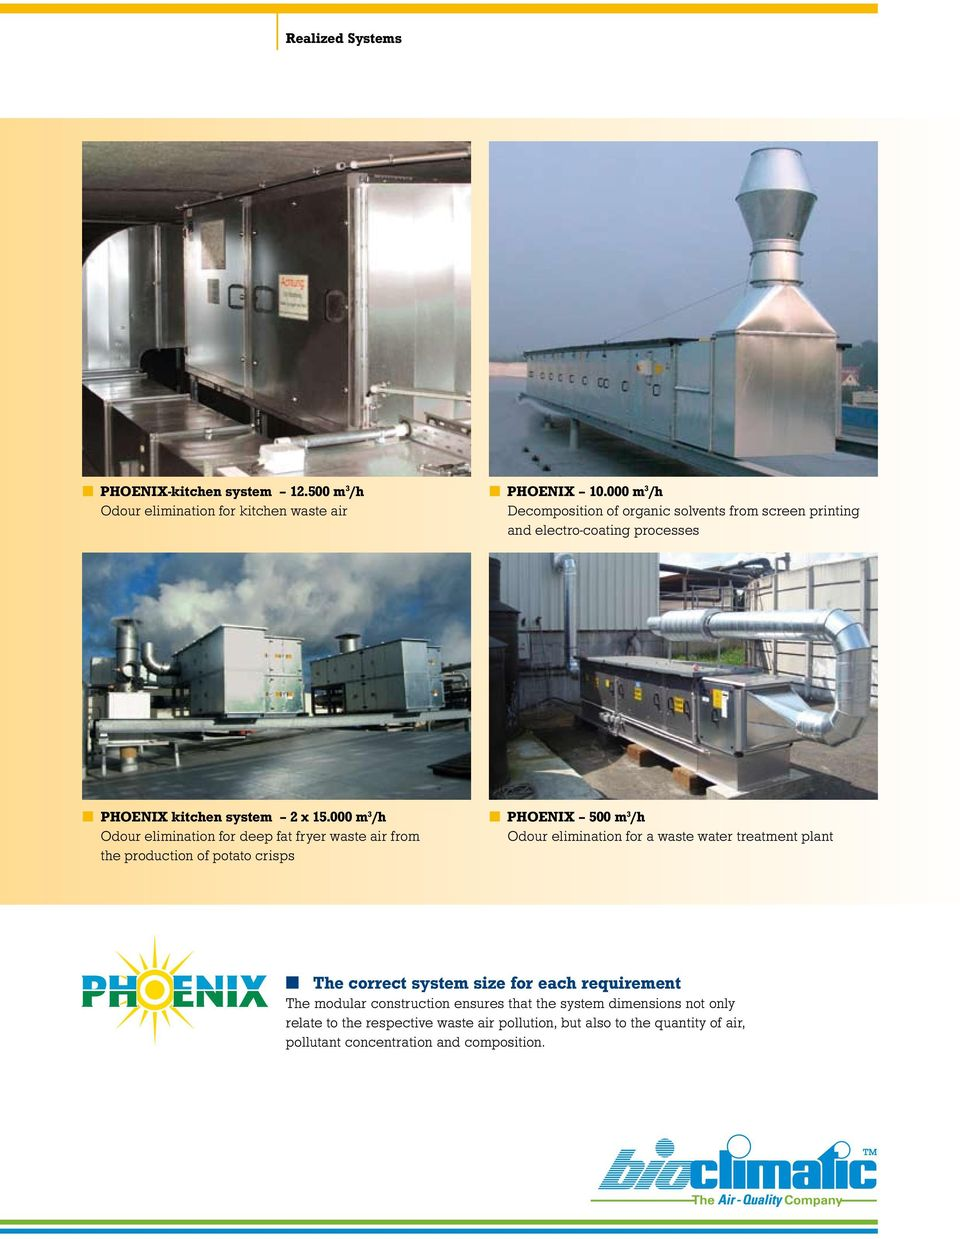 000 m 3 /h Odour elimination for deep fat fryer waste air from the production of potato crisps PHOENIX 500 m 3 /h Odour elimination for a waste water